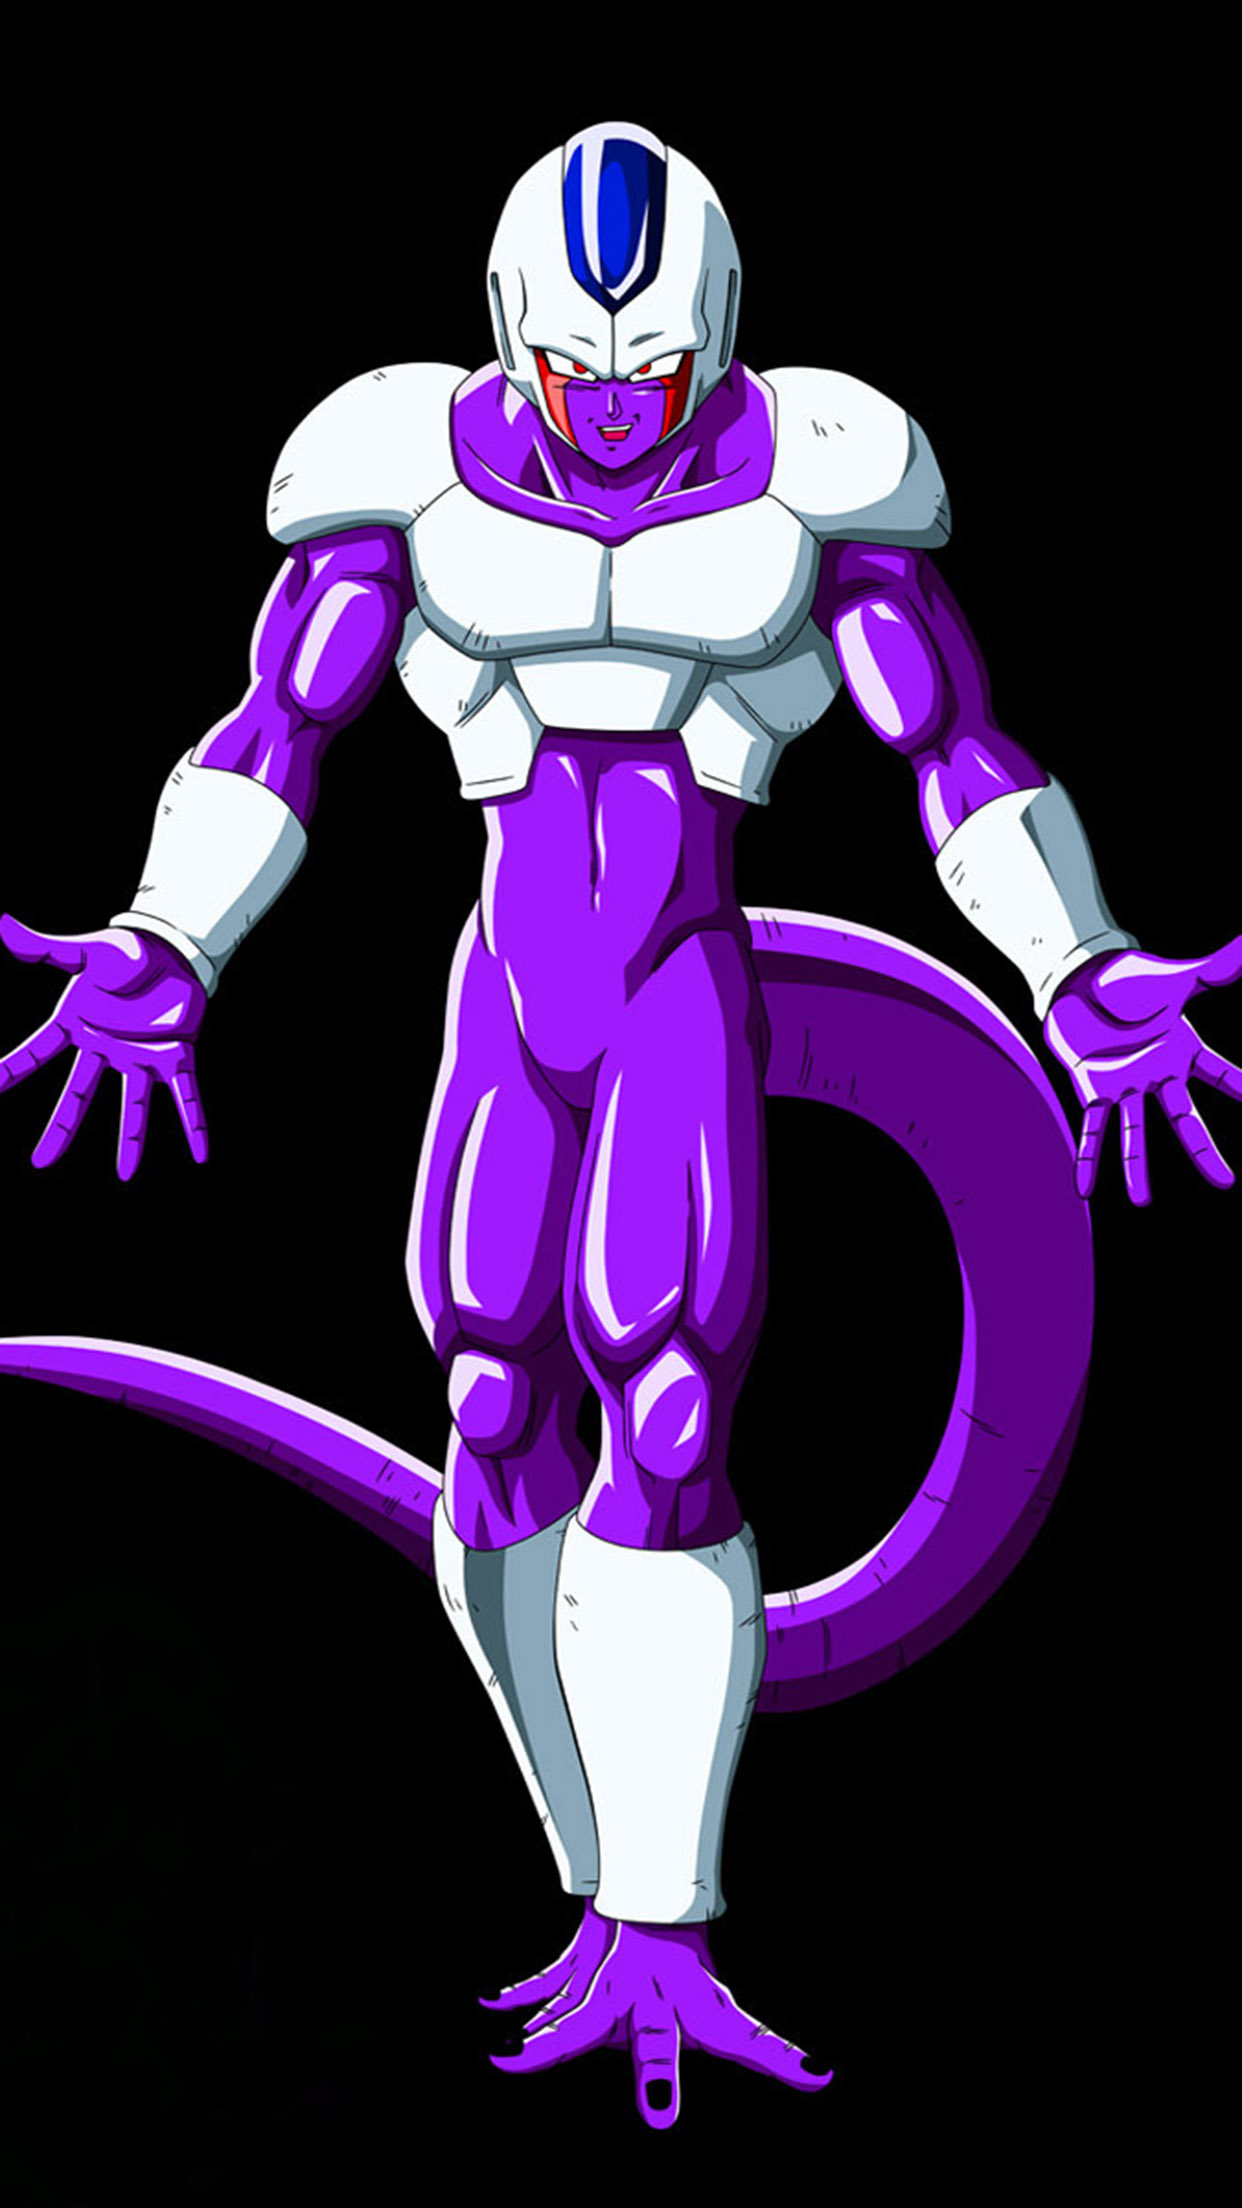 Dragon Ball Z Cooler Wallpaper For Iphone 11 Pro Max X 8 7 6 Free Download On 3wallpapers